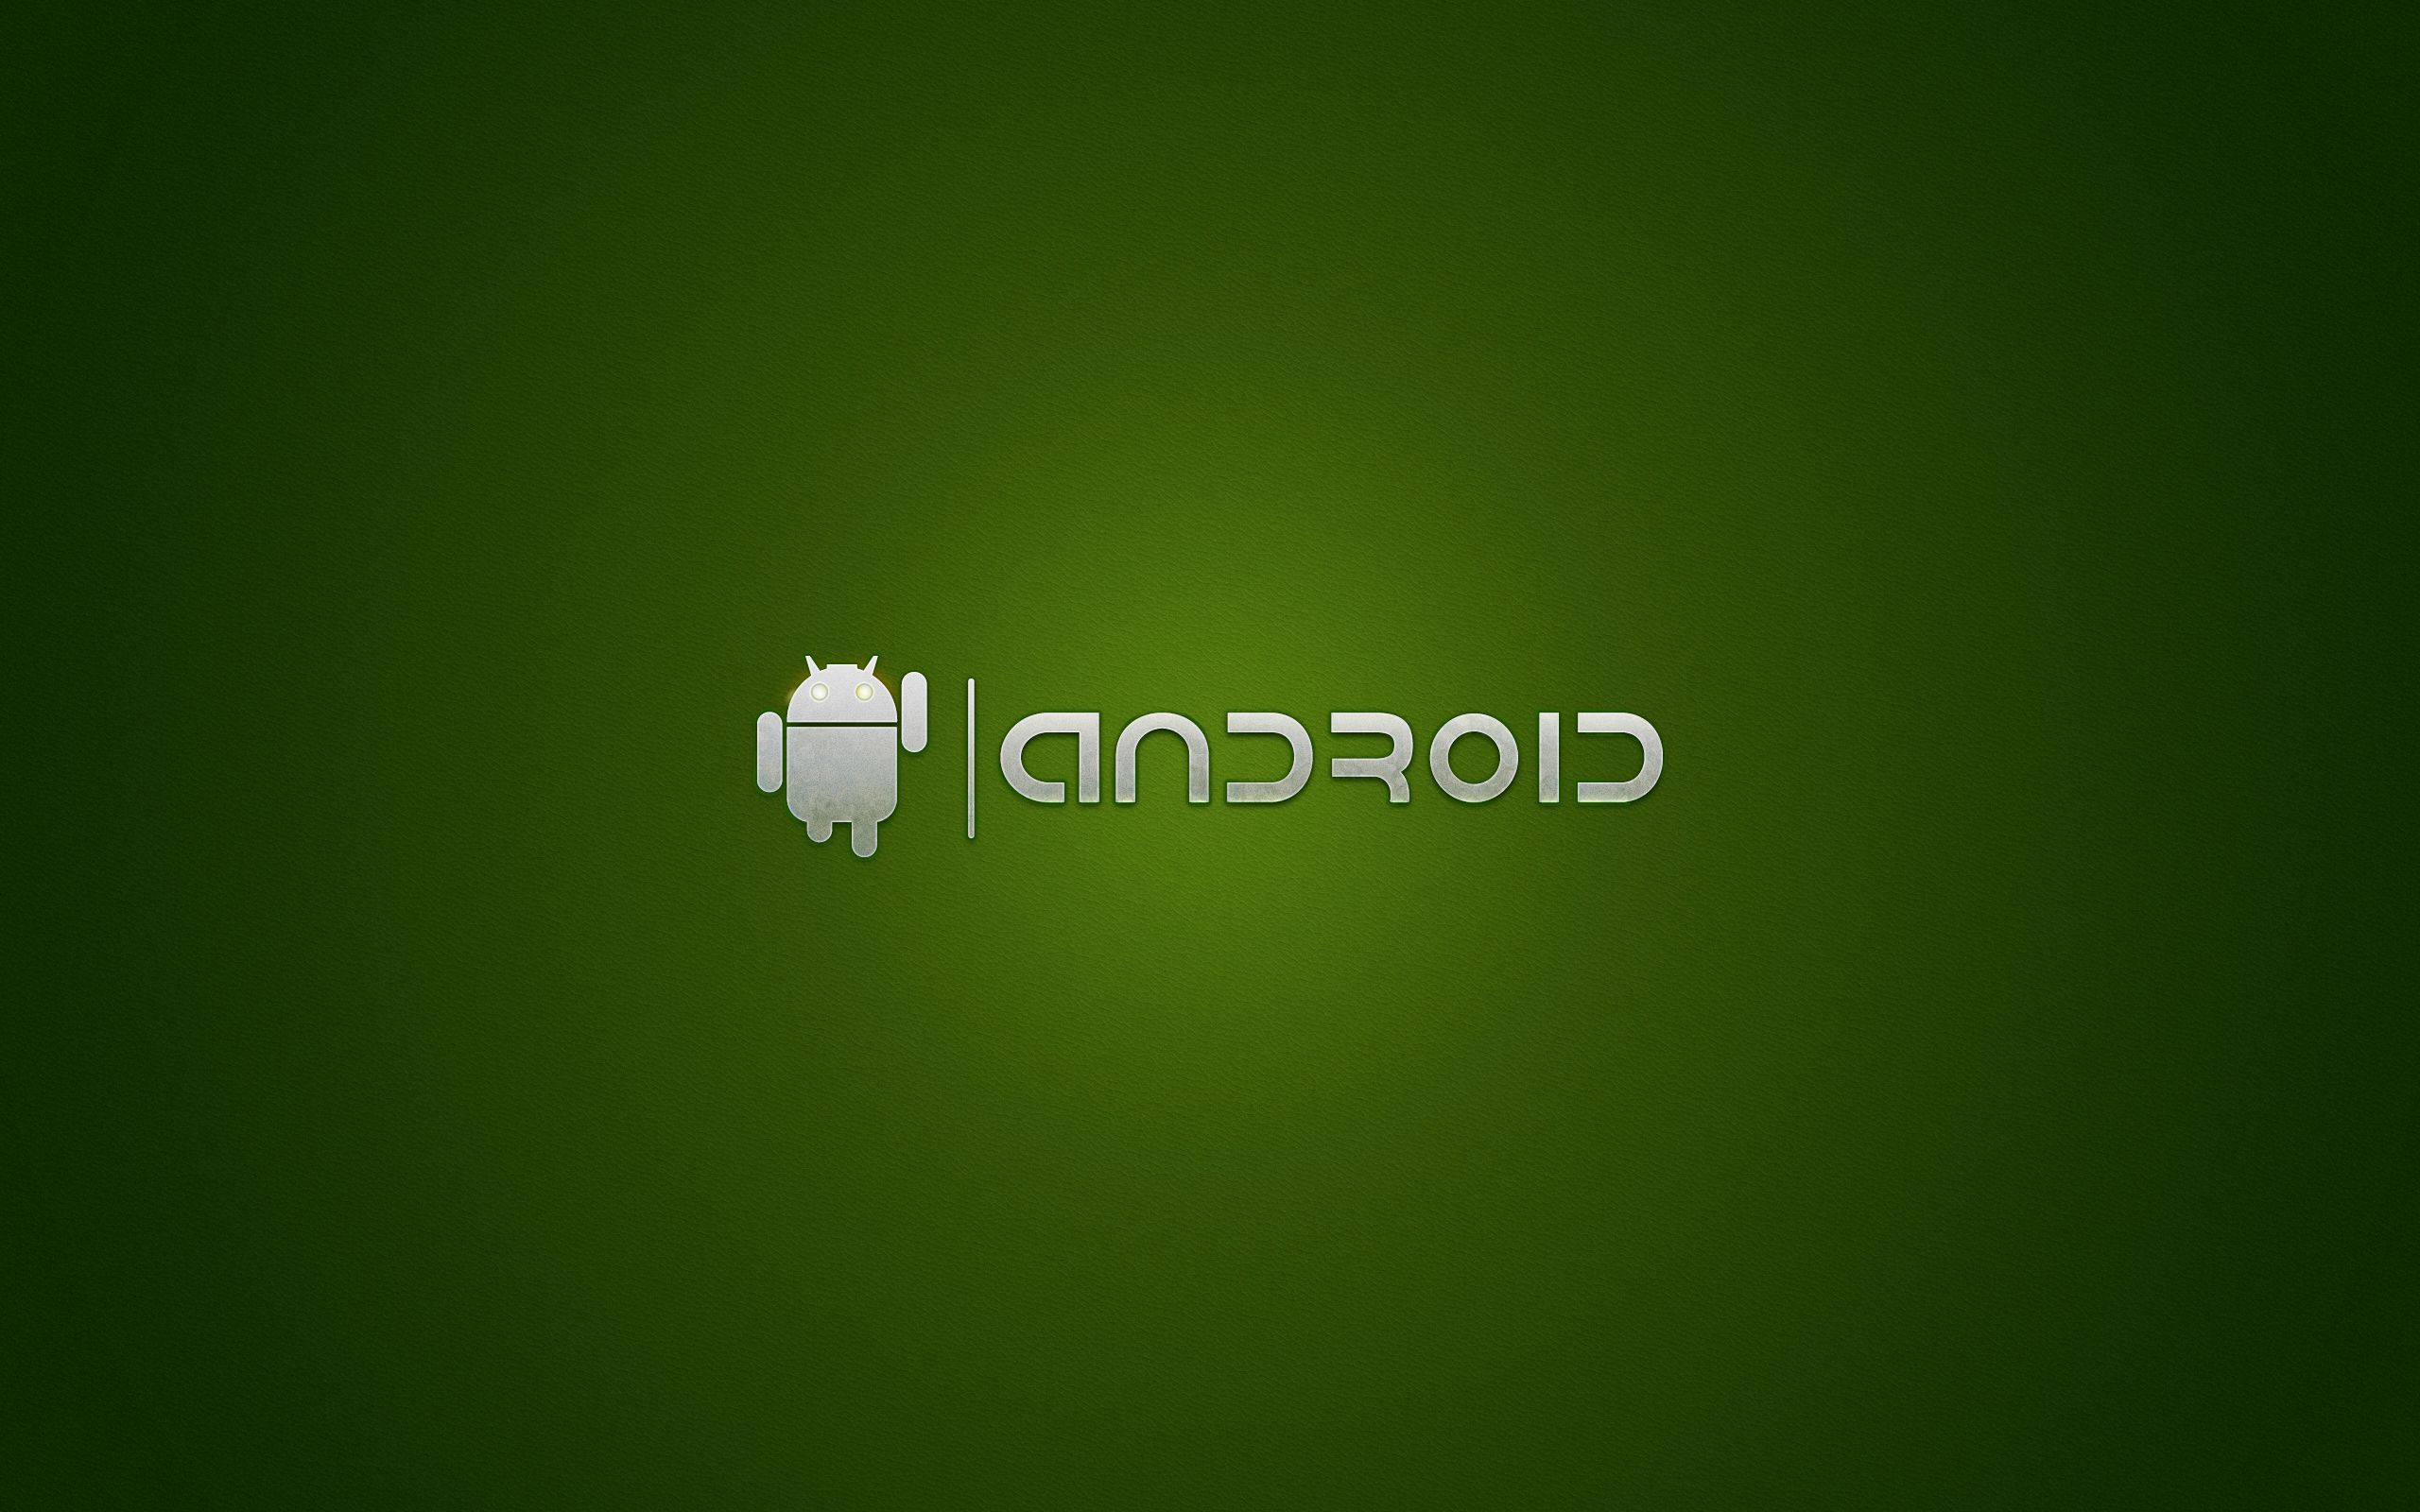 android wallpapers